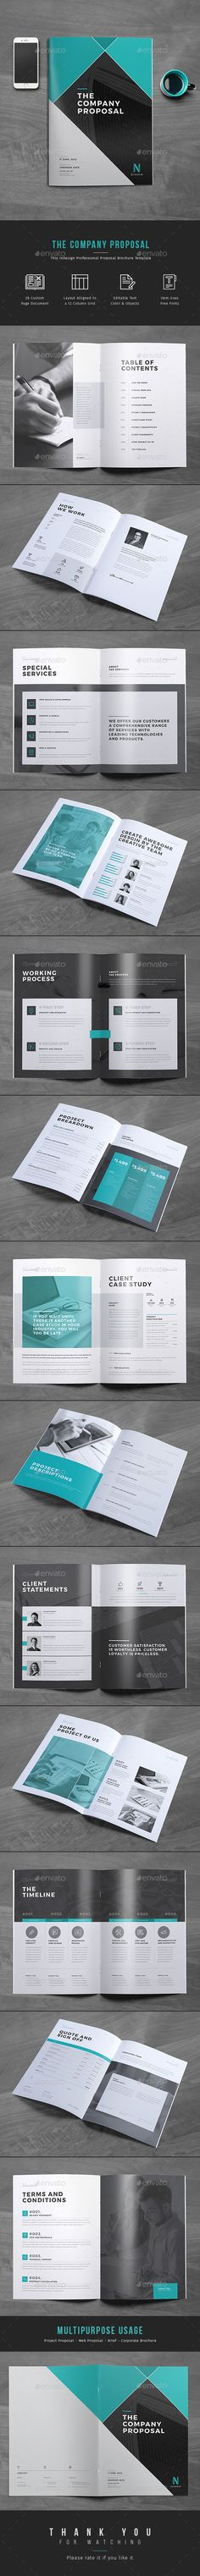 Business Plan Business planning, Stationery design and Proposals - company profile sample download